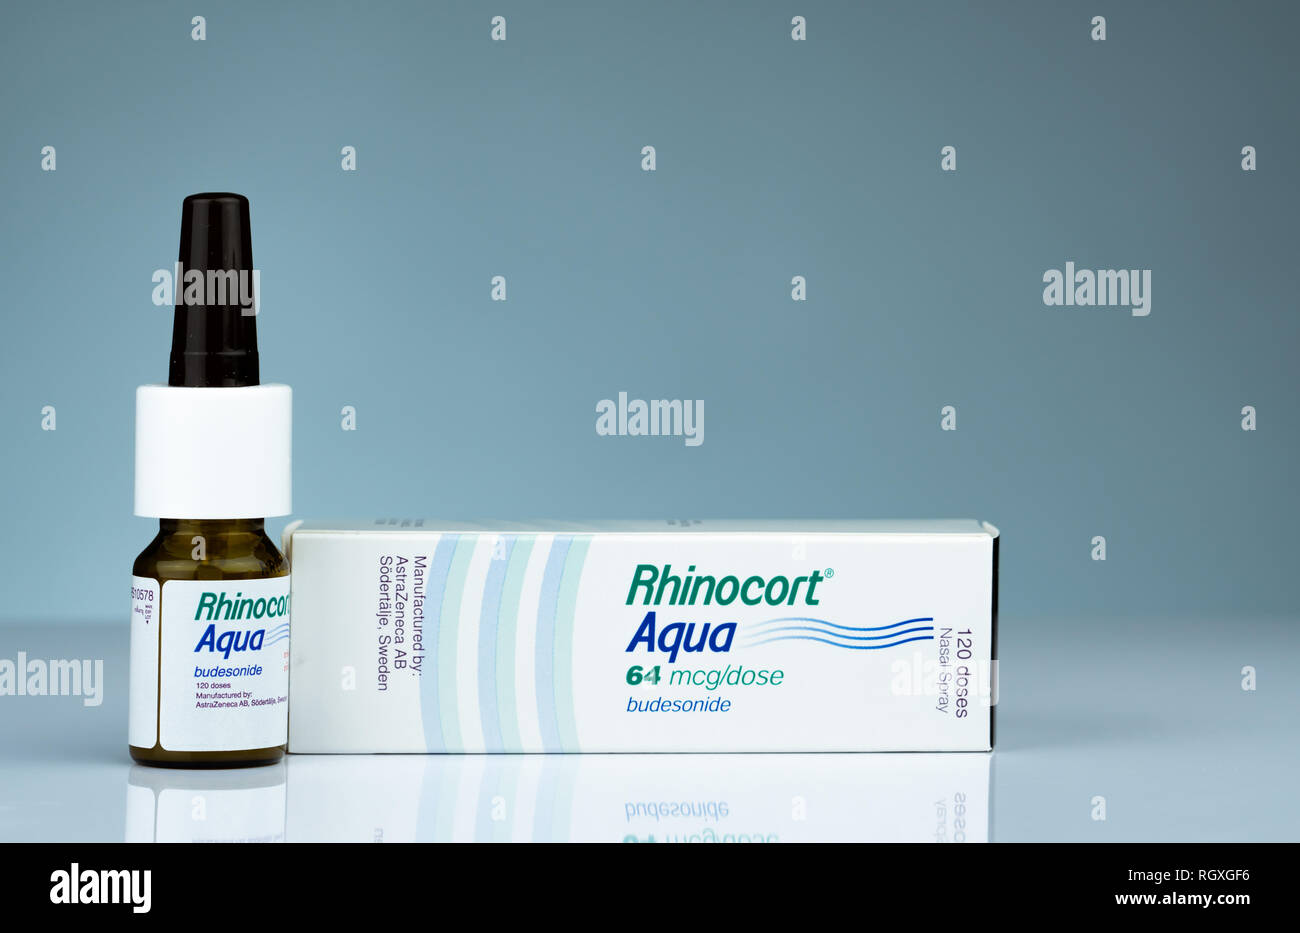 CHONBURI, THAILAND-OCTOBER 17, 2018 : Rhinocort Aqua 64 mcg/dose 120 doses. Budesonide nasal spray product of Johnson & Johnson (Thailand). - Stock Image